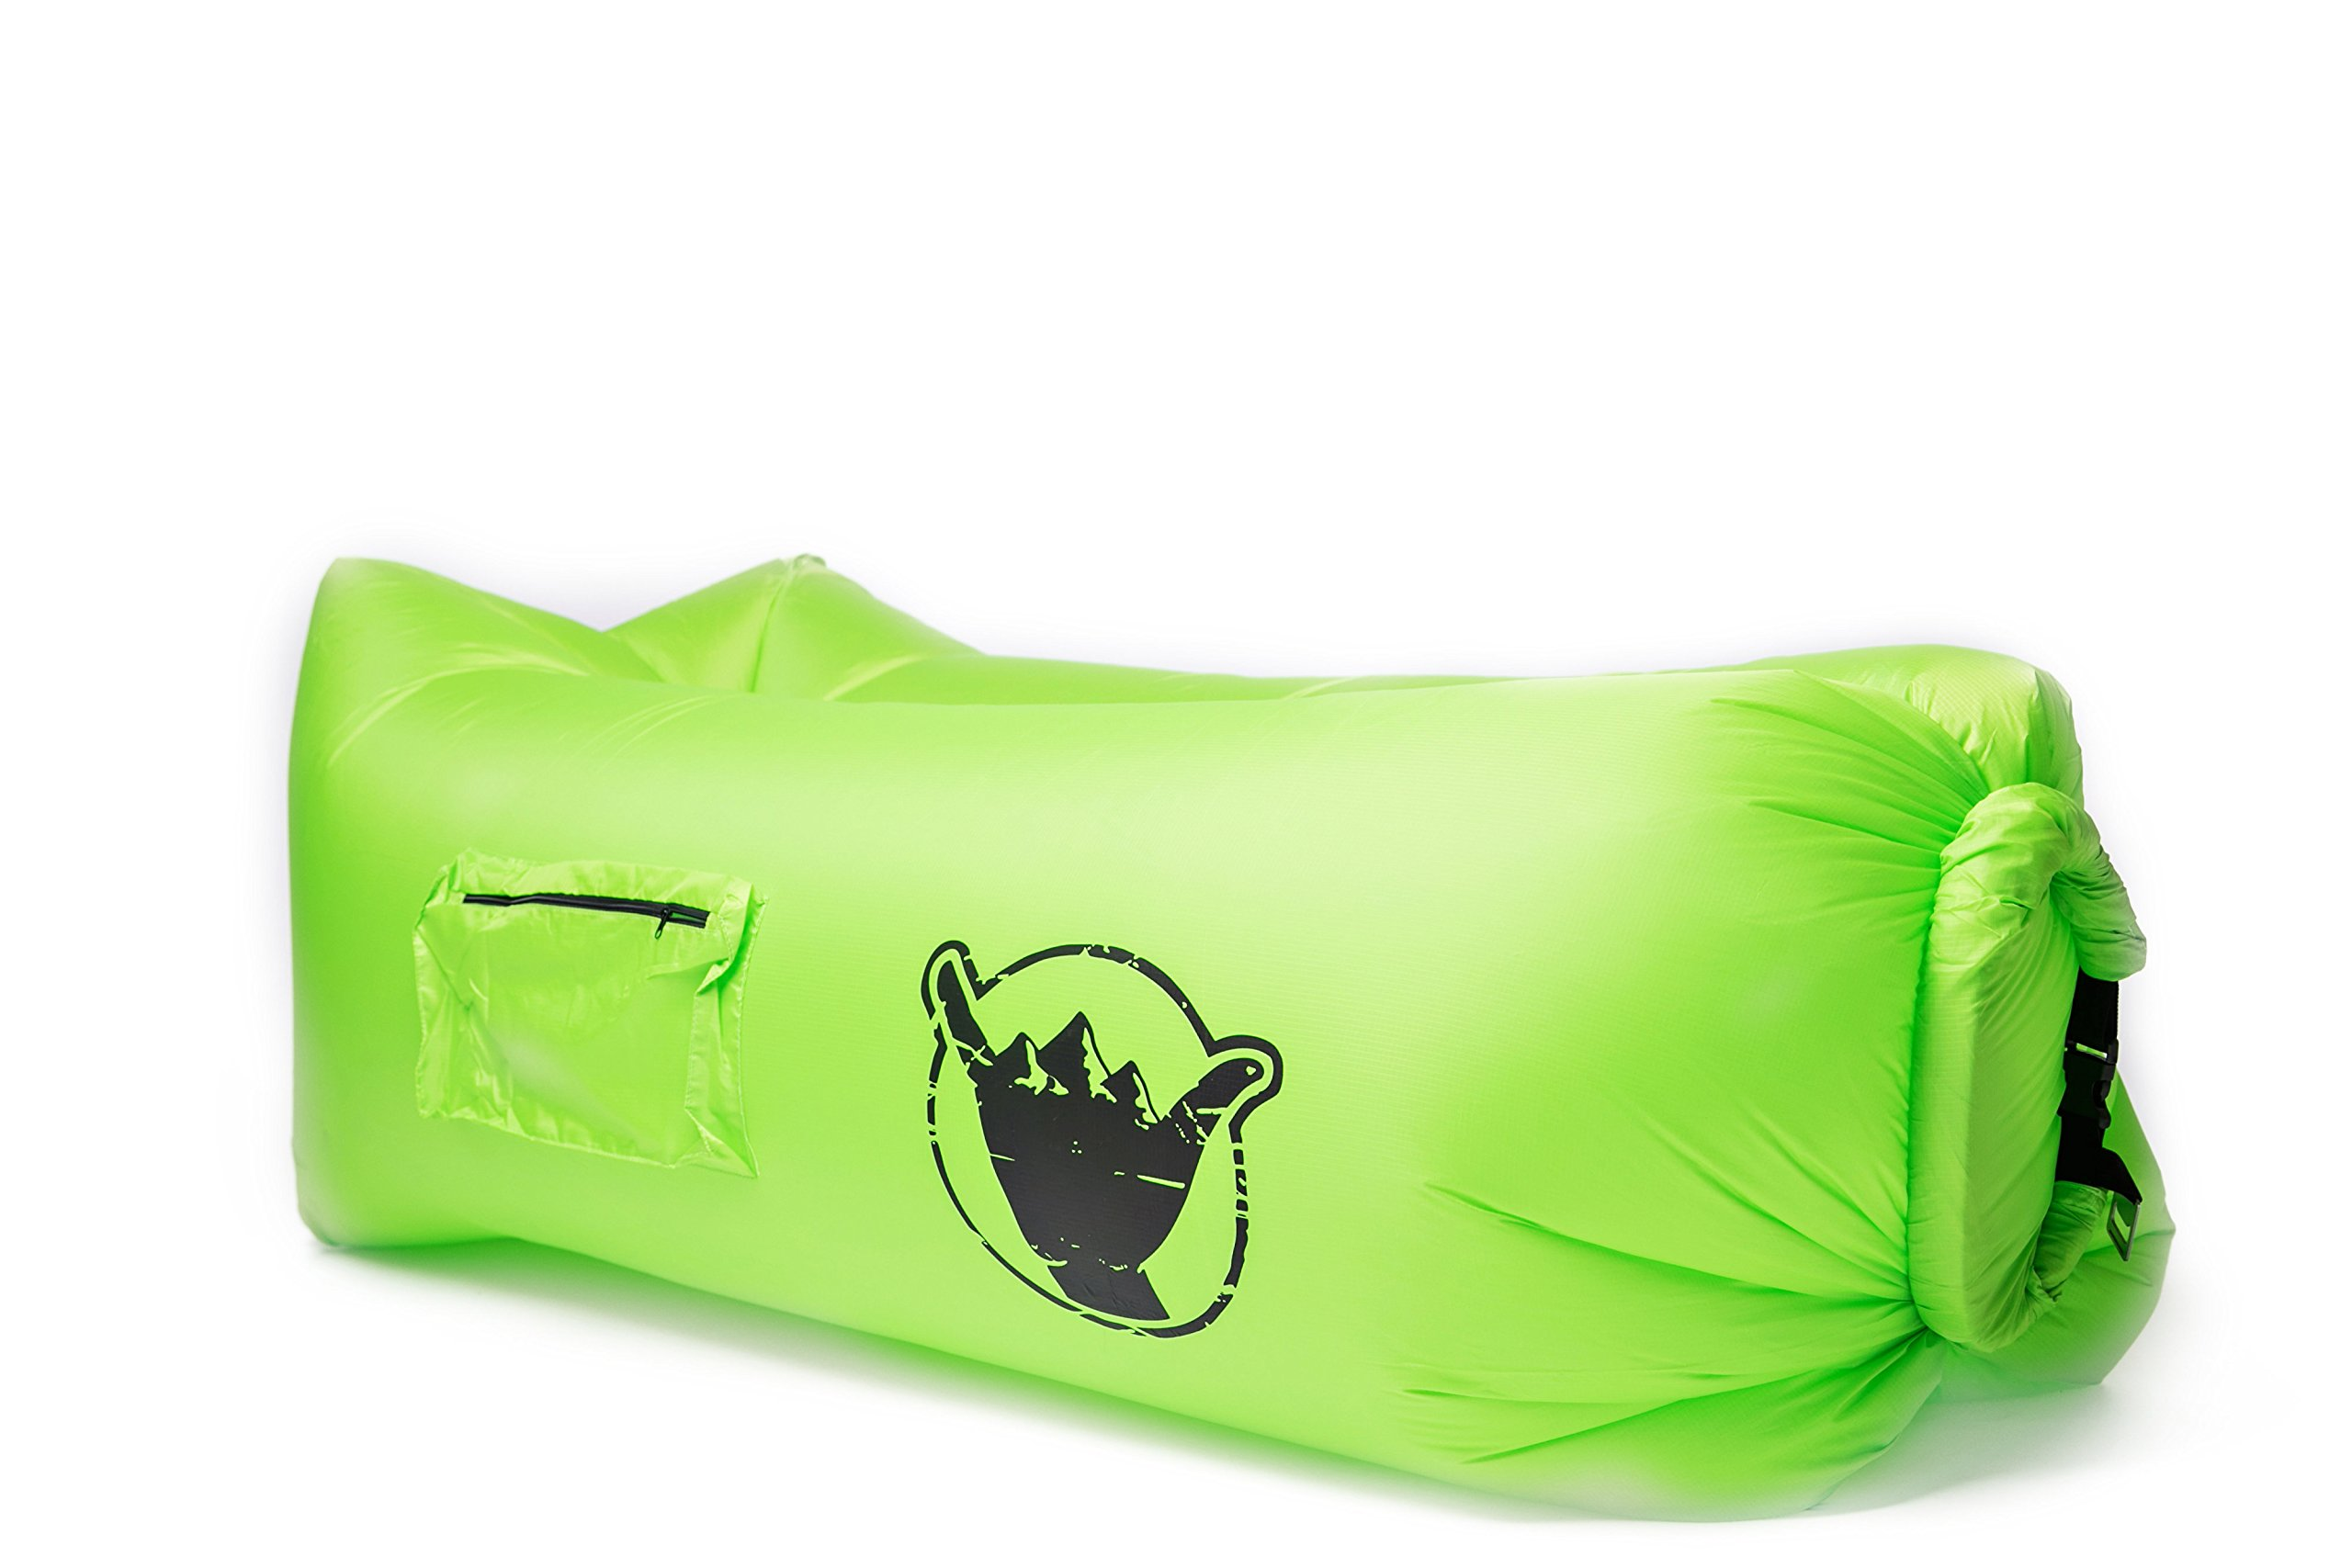 SweetSon Inflatable Lounger- Carry Bag, Securing Stake, Bottle Opener, Cup Holder, Large Pocket with Zipper - Lightweight, Durable, Portable - Beach, Pool and Camping - Outdoor and Indoor Use (Green) by SweetSon